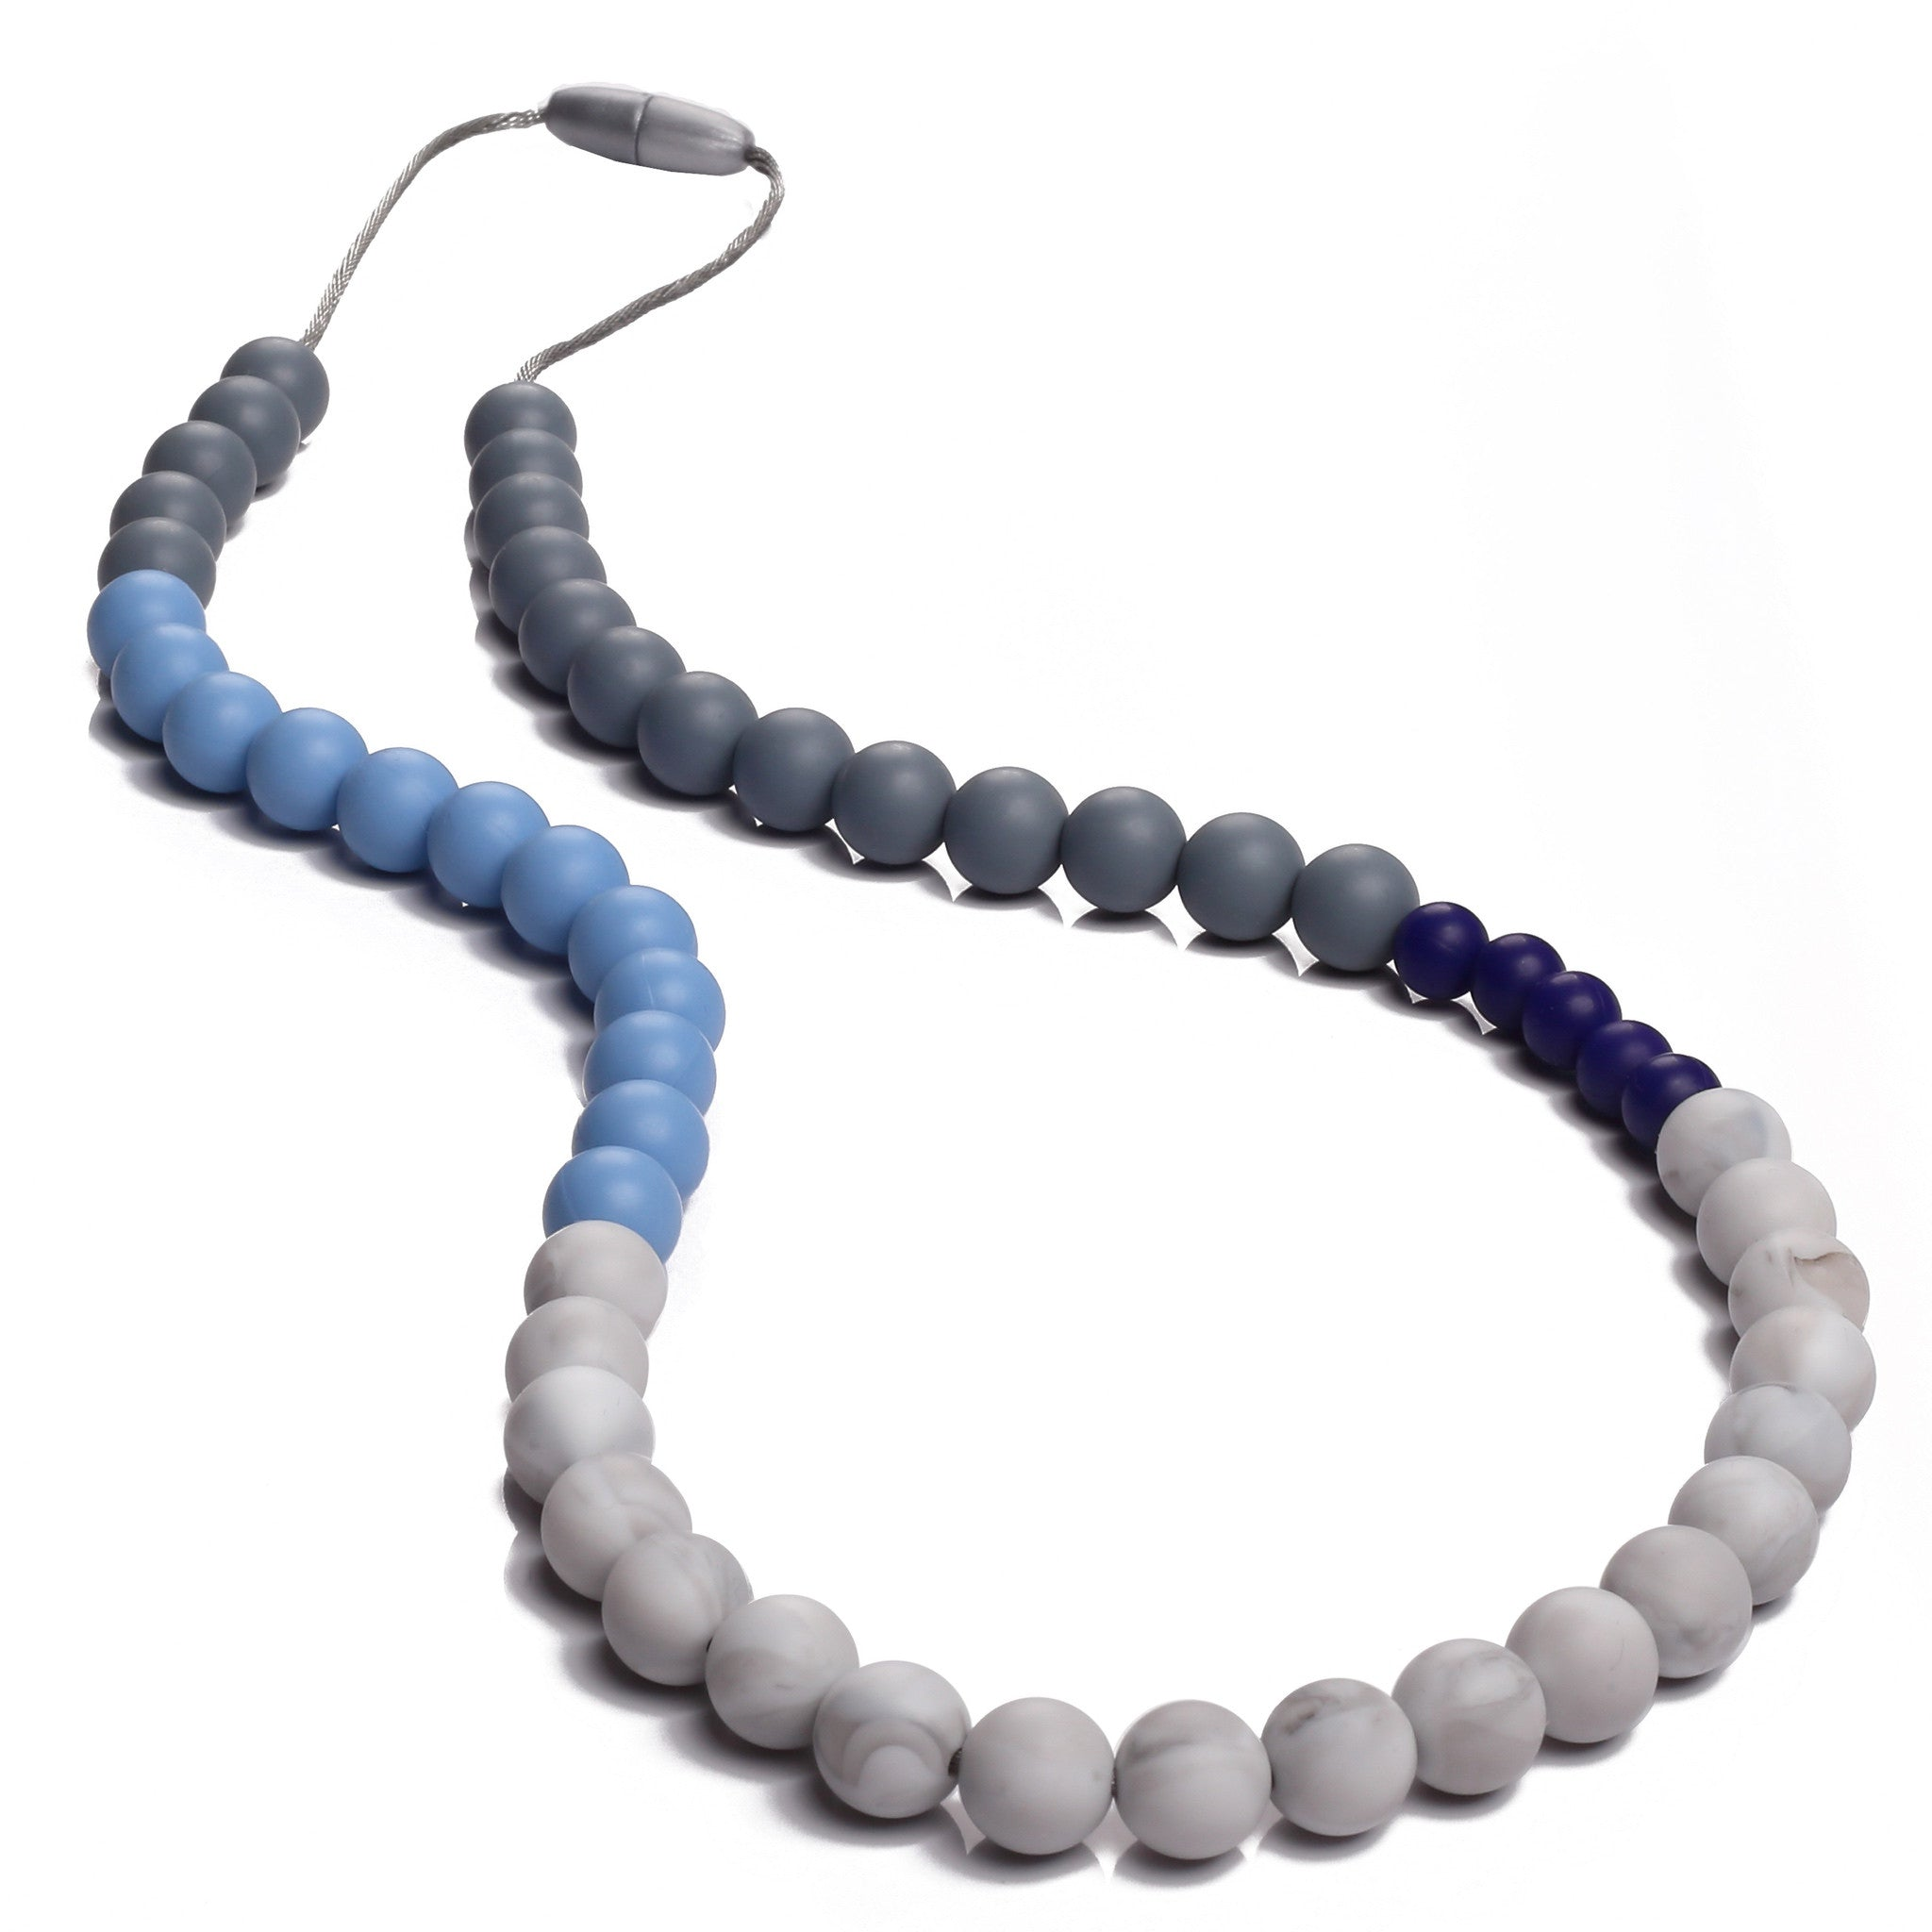 Sophie Teething Necklace - Blue/Gray/Marble